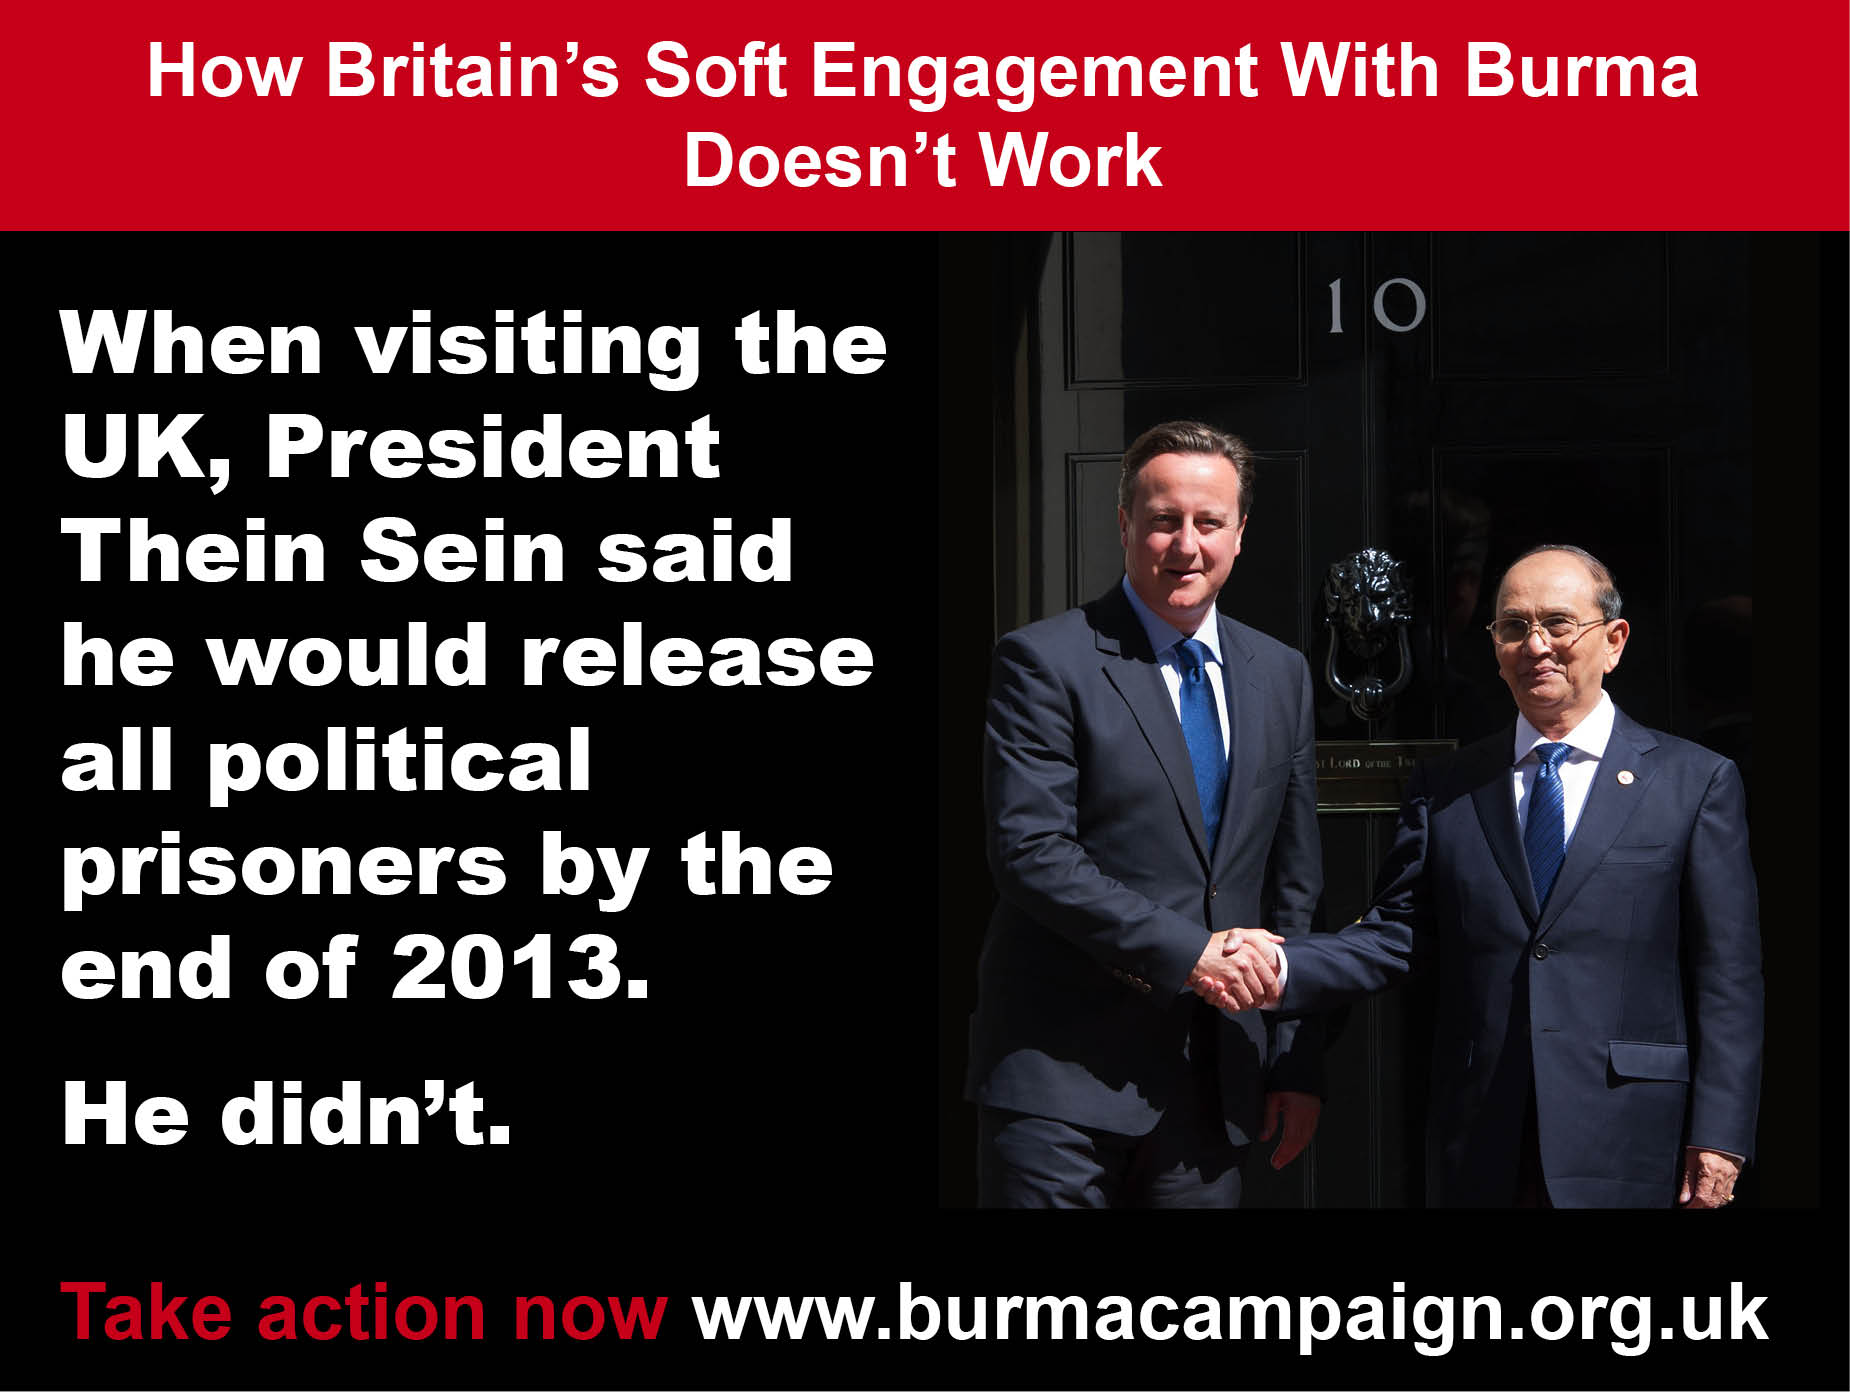 soft engagement doesn't work political prisoners burma campaign UK.JPG